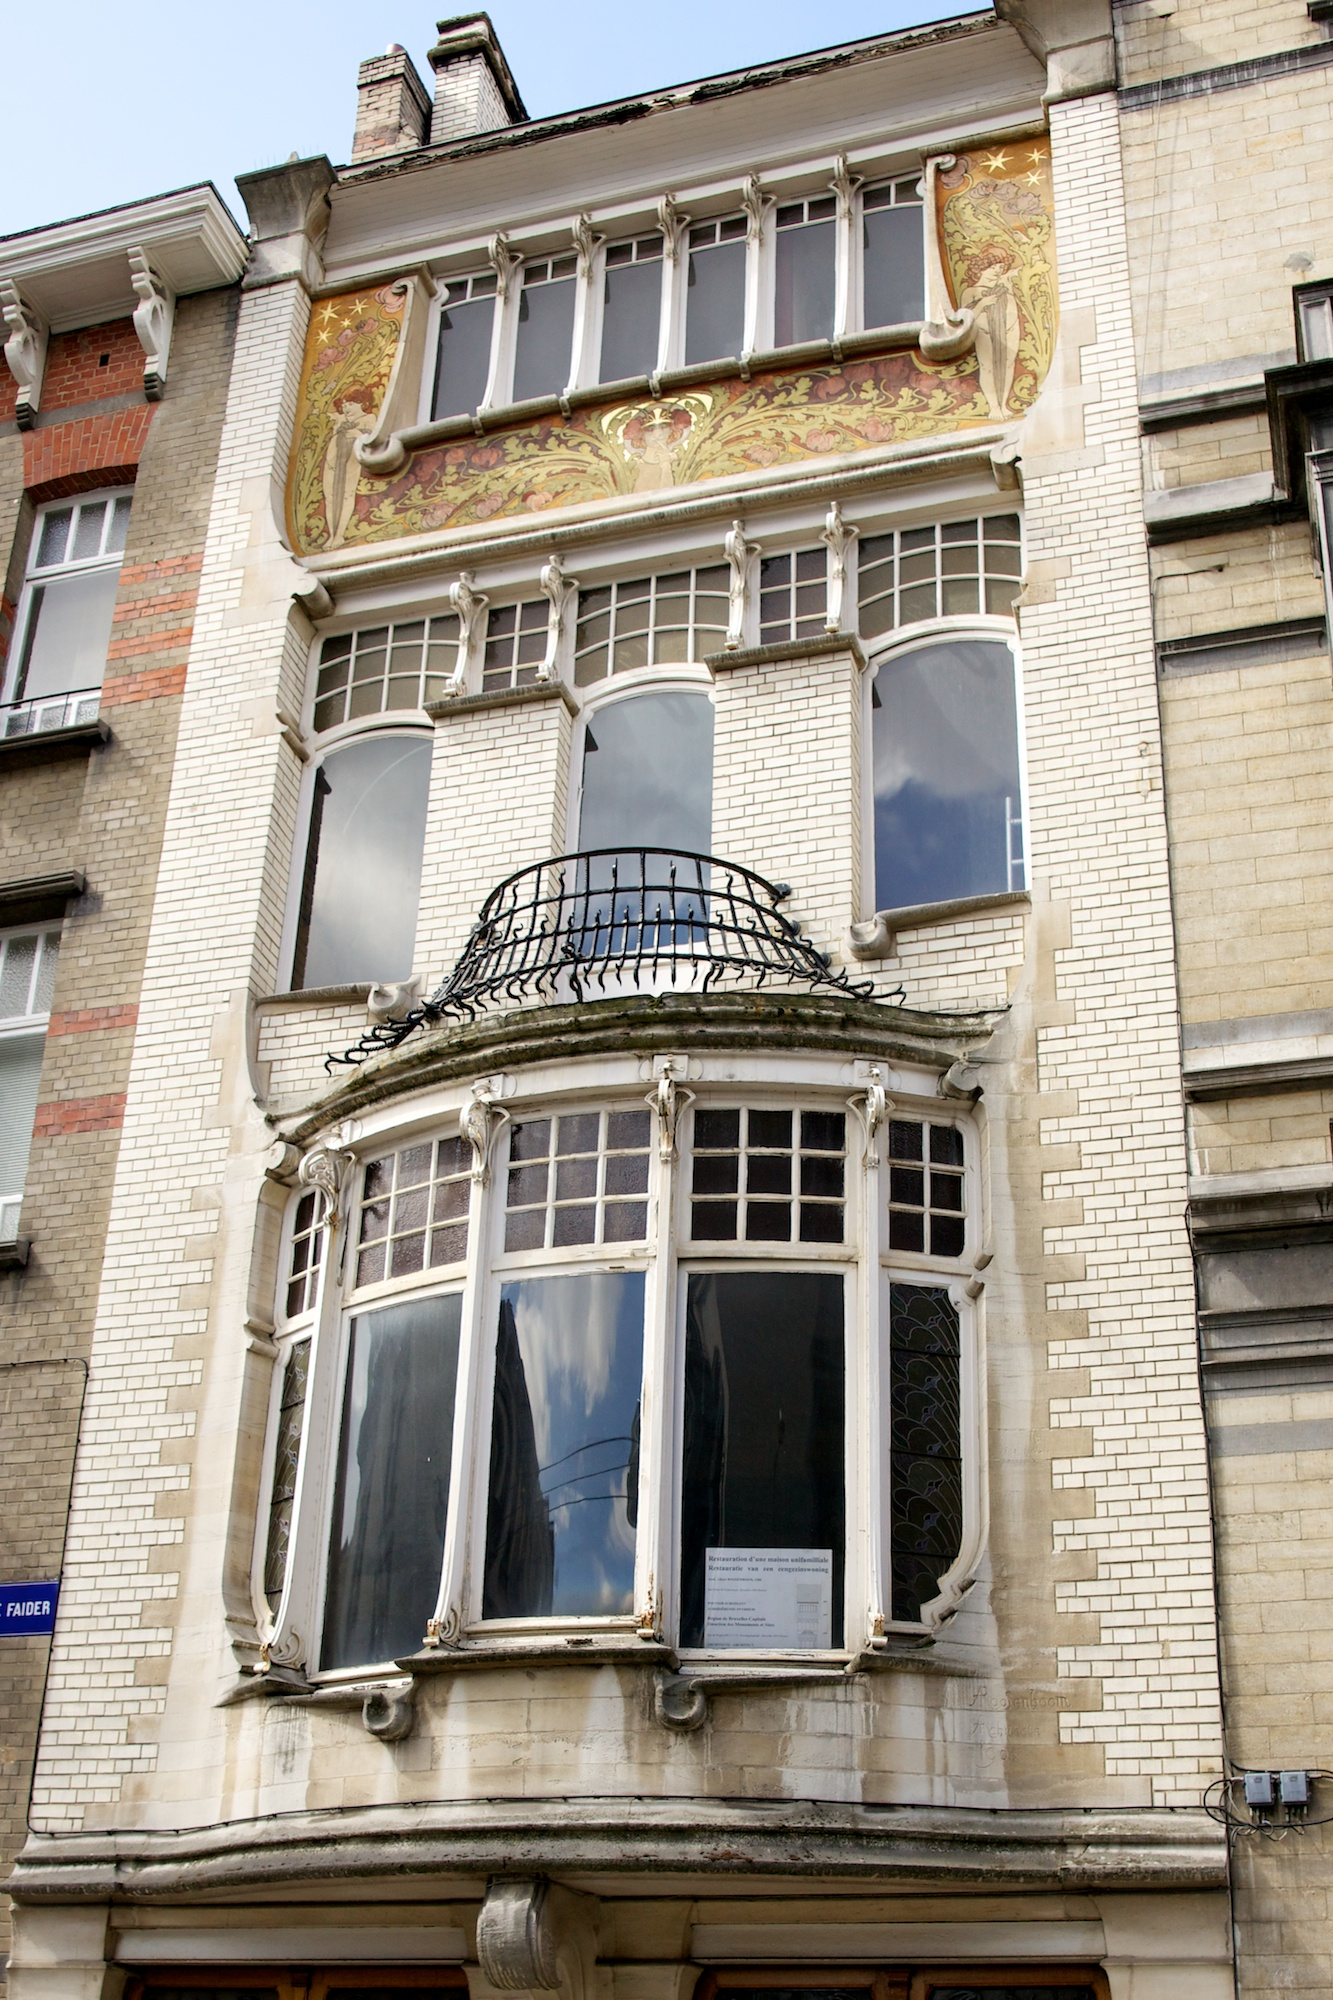 Victor horta art nouveau architect vironevaeh for Architecture art